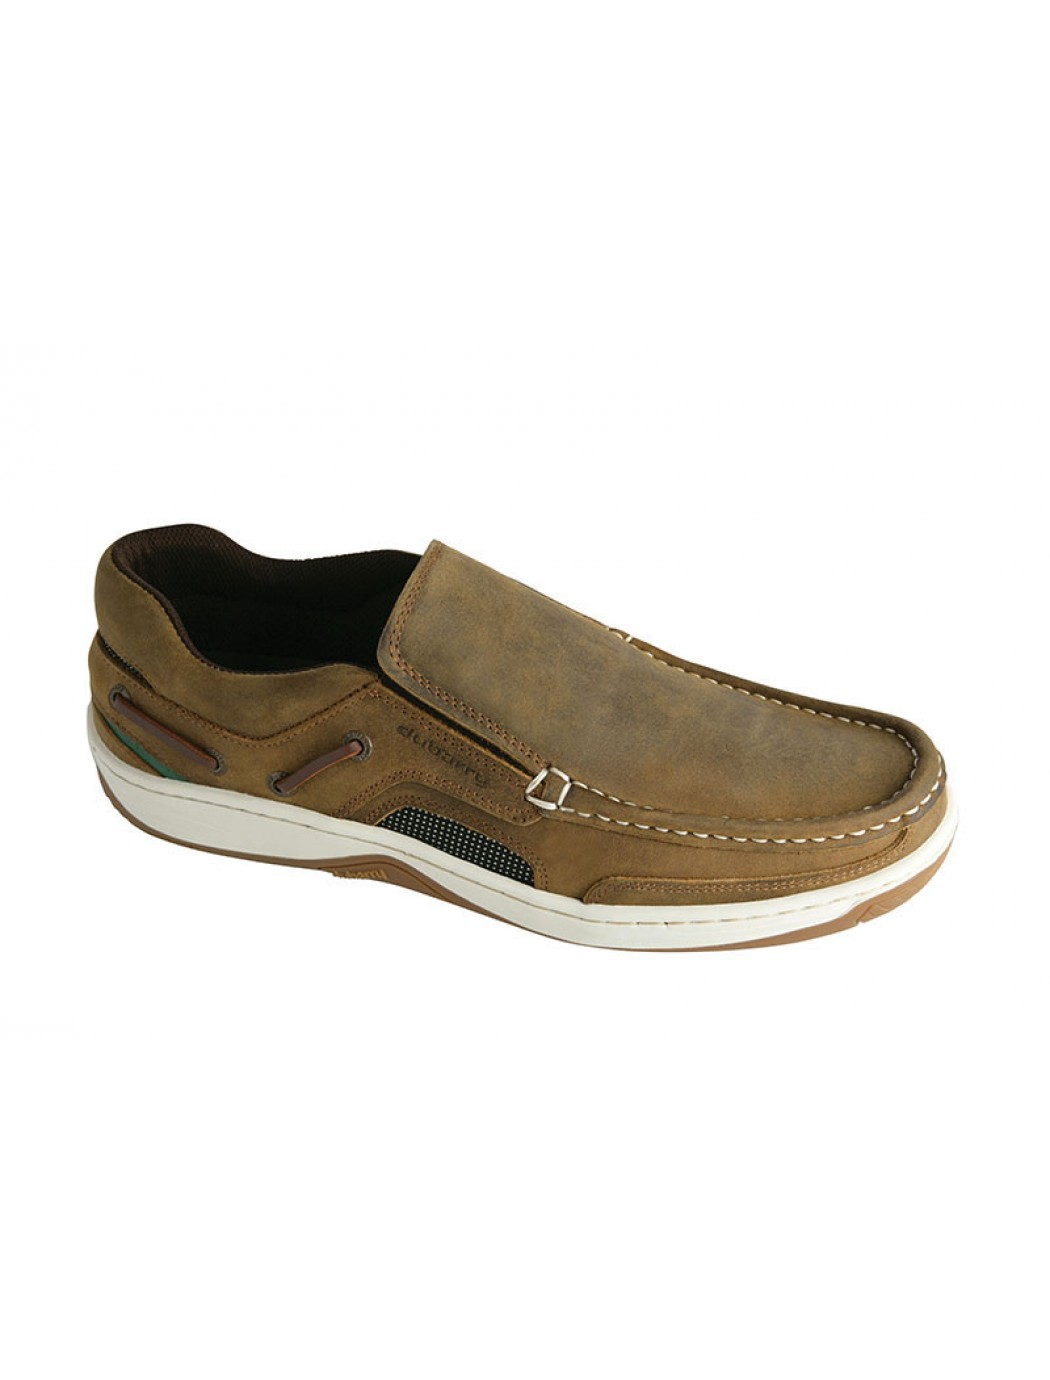 yacht-mens-decks-brown